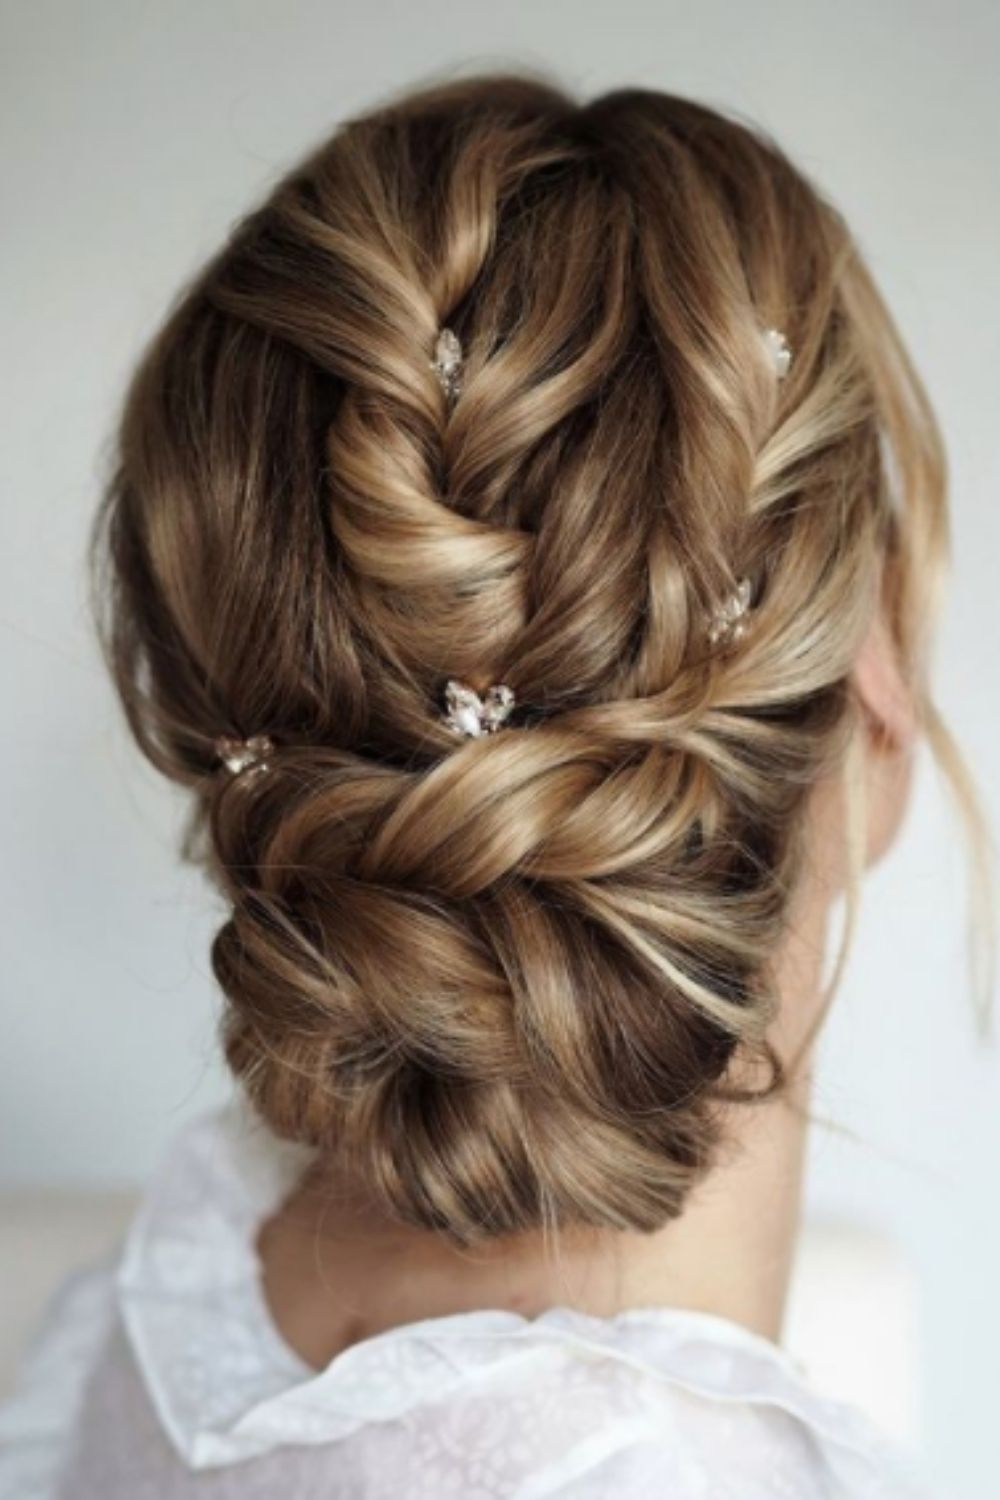 Crown braided hair for homecoming